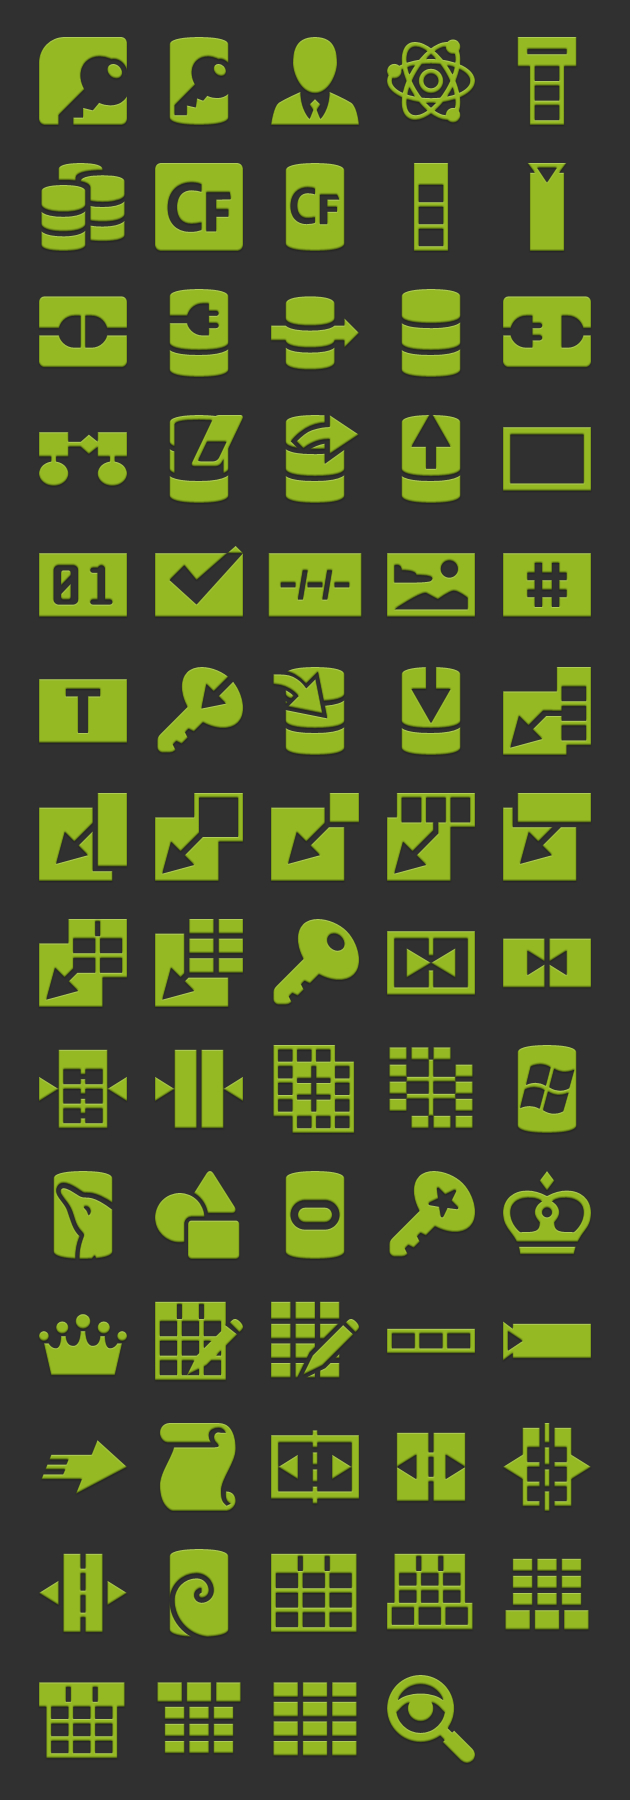 android icons database launcher  xhdpi